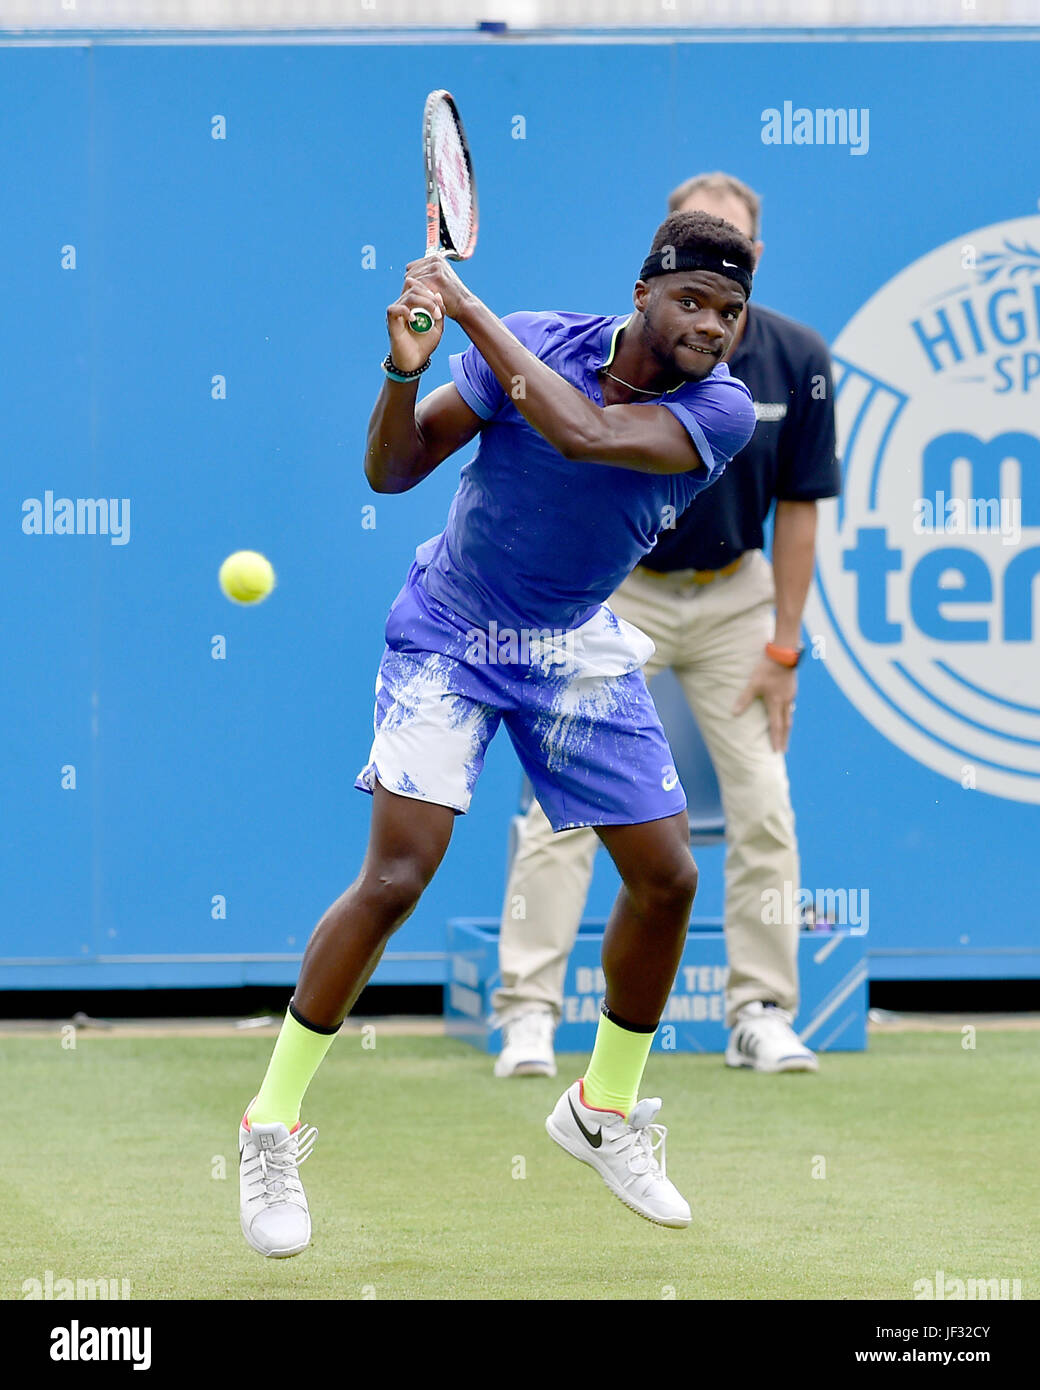 Frances Tiafoe of USA in action at the Aegon International Eastbourne tennis tournament at Devonshire Park , Eastbourne - Stock Image